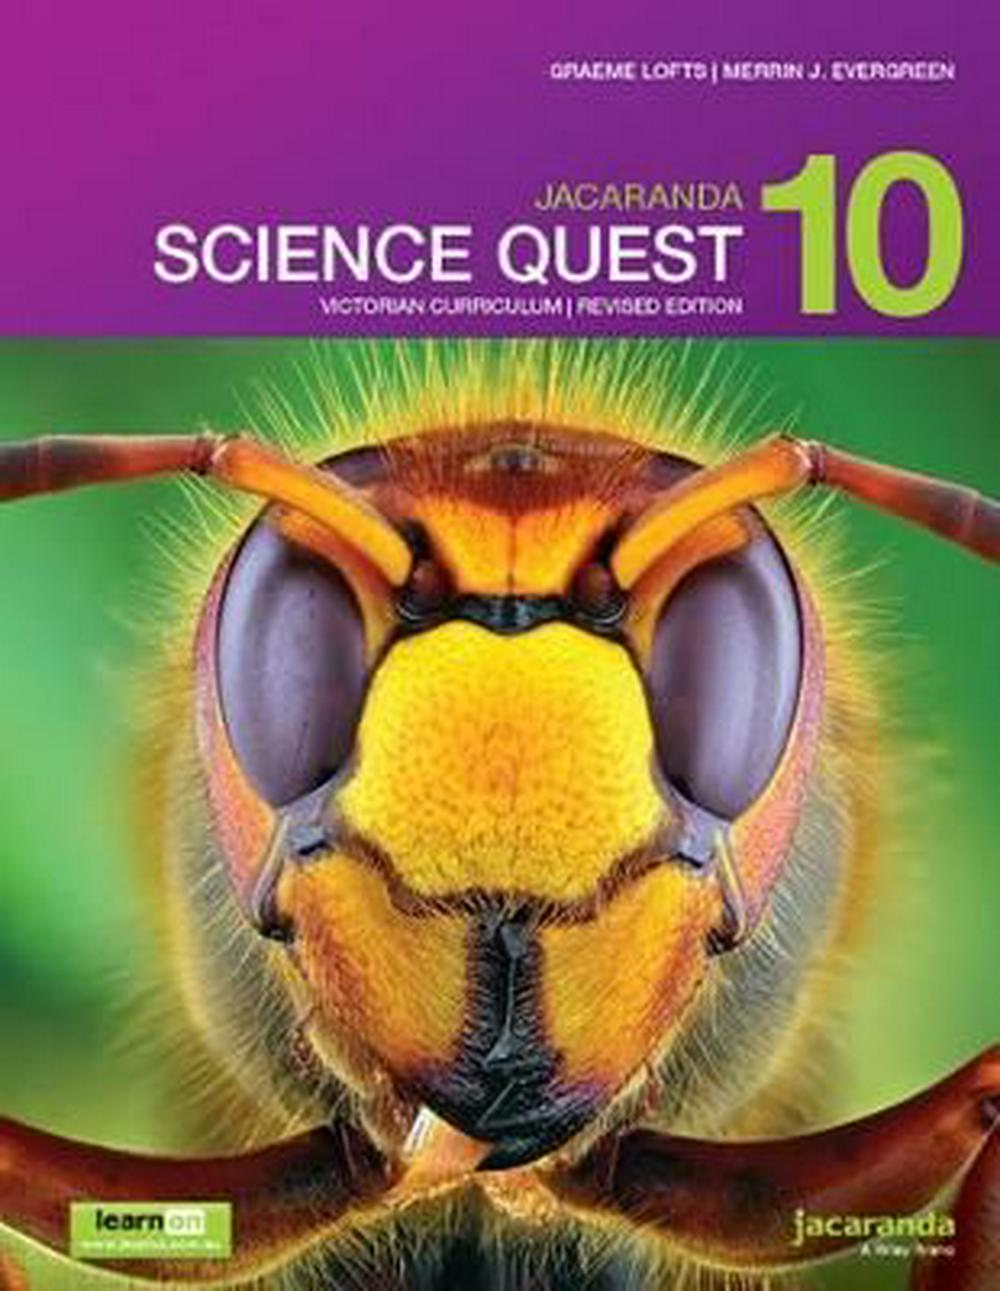 Jacaranda Science Quest 10 for Victoria Australian Curriculum 1E (Revised) LearnON & Print